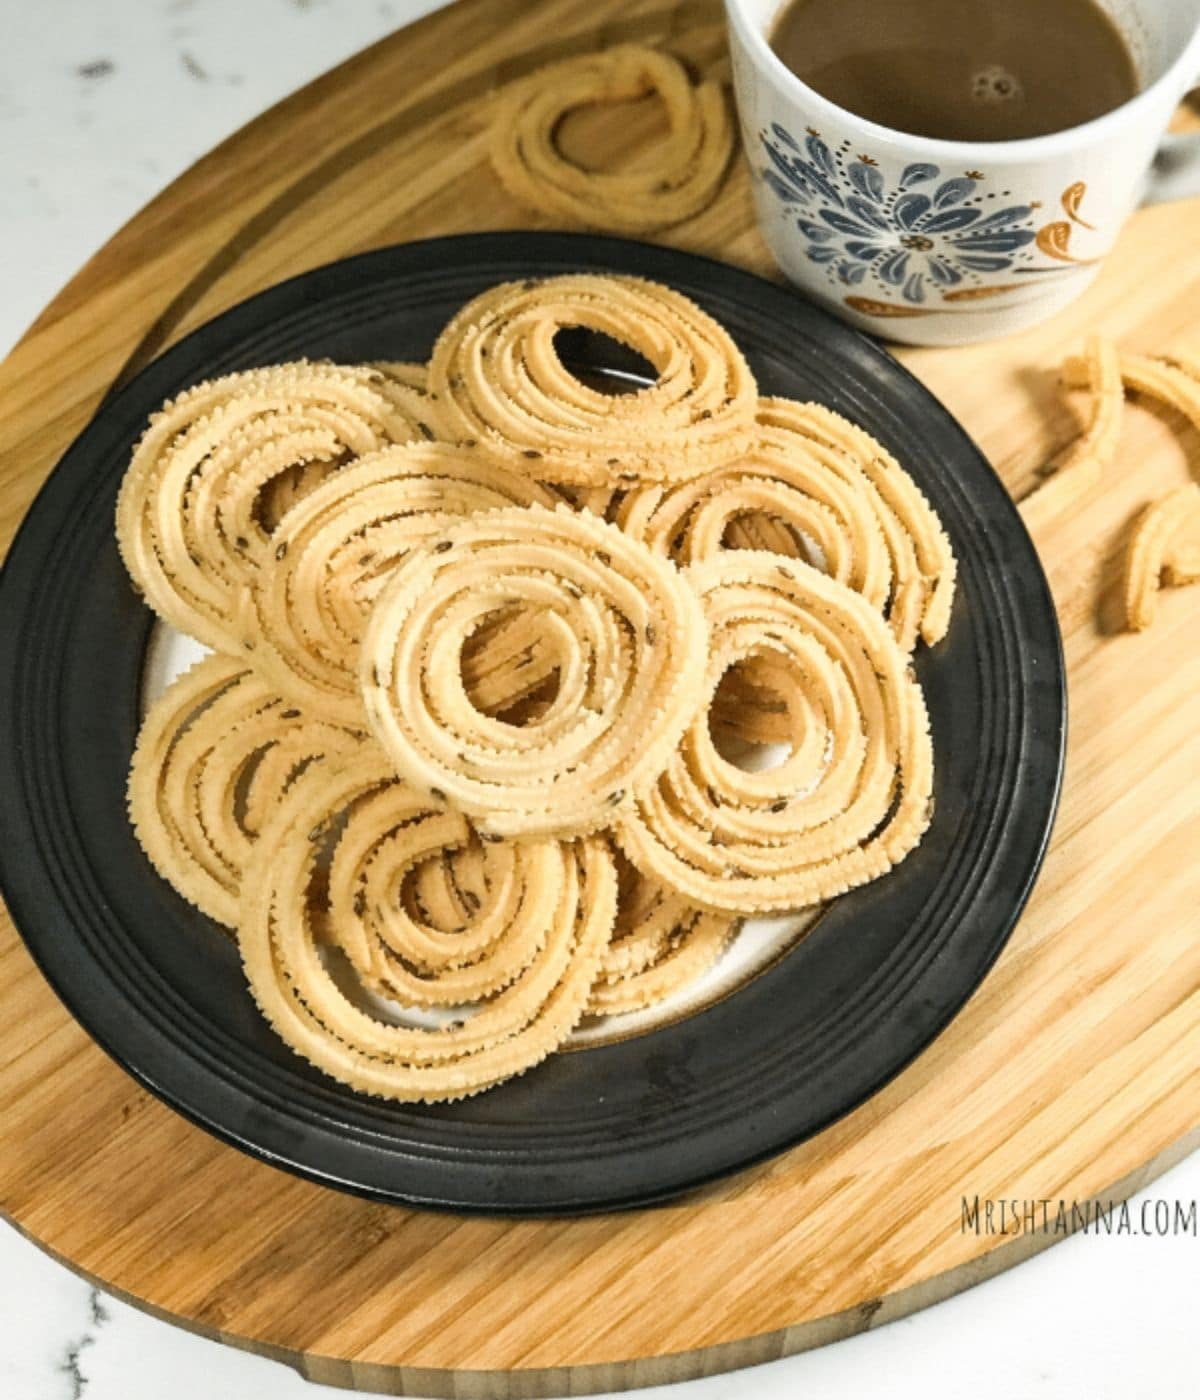 A plate full of chakli is on the table along with cup of coffee.